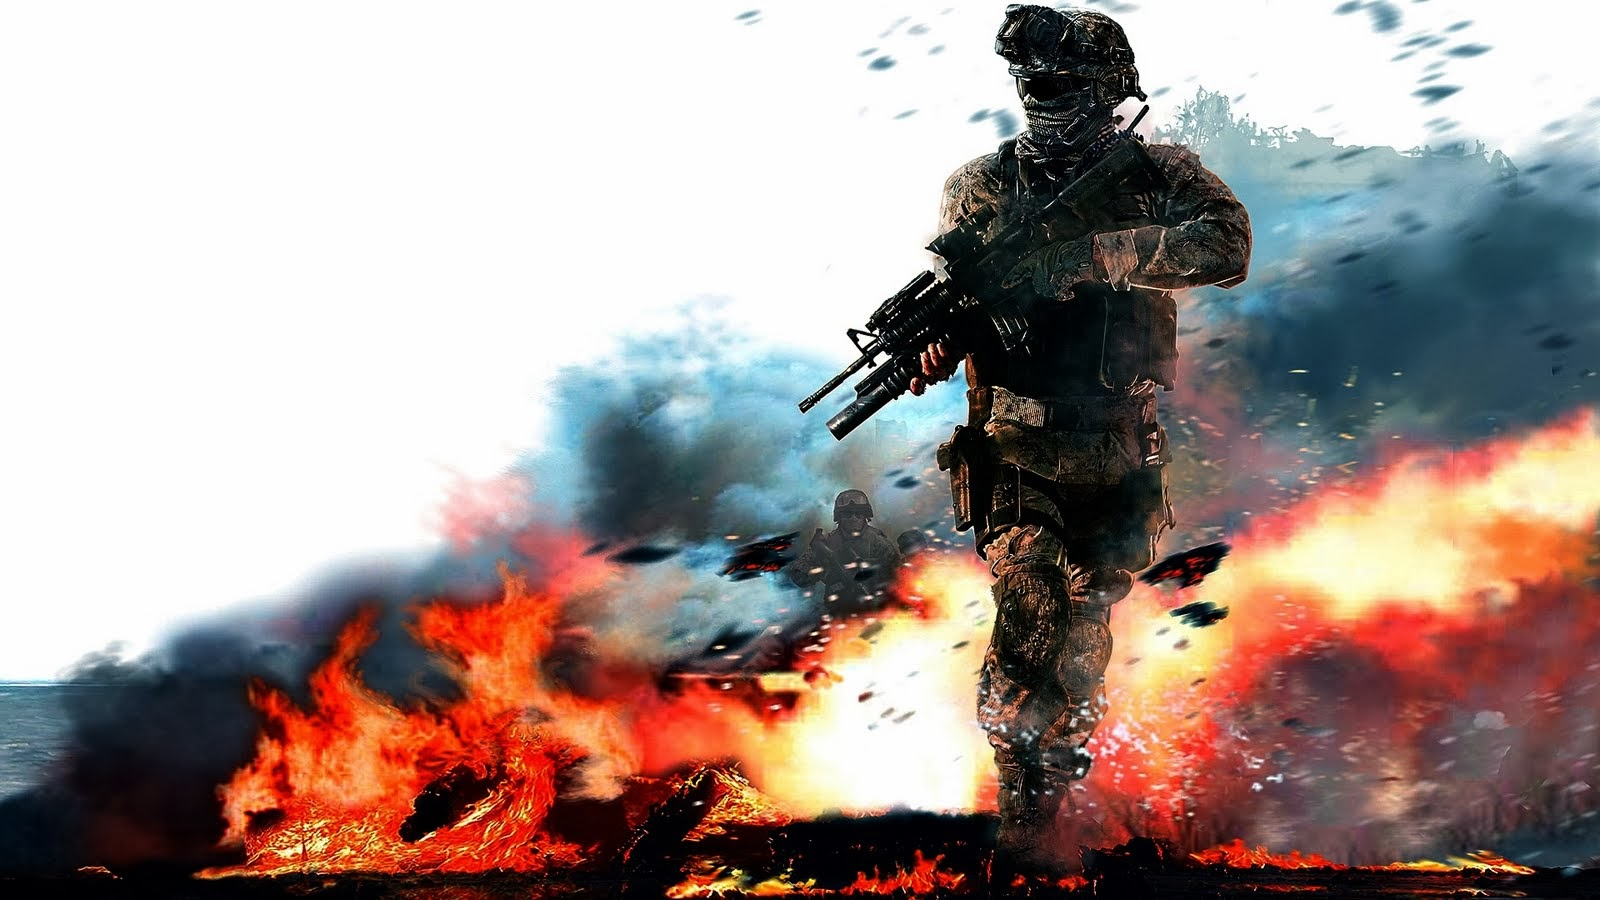 Call of Duty hd wallpaper ~ HD WALLPAPERS